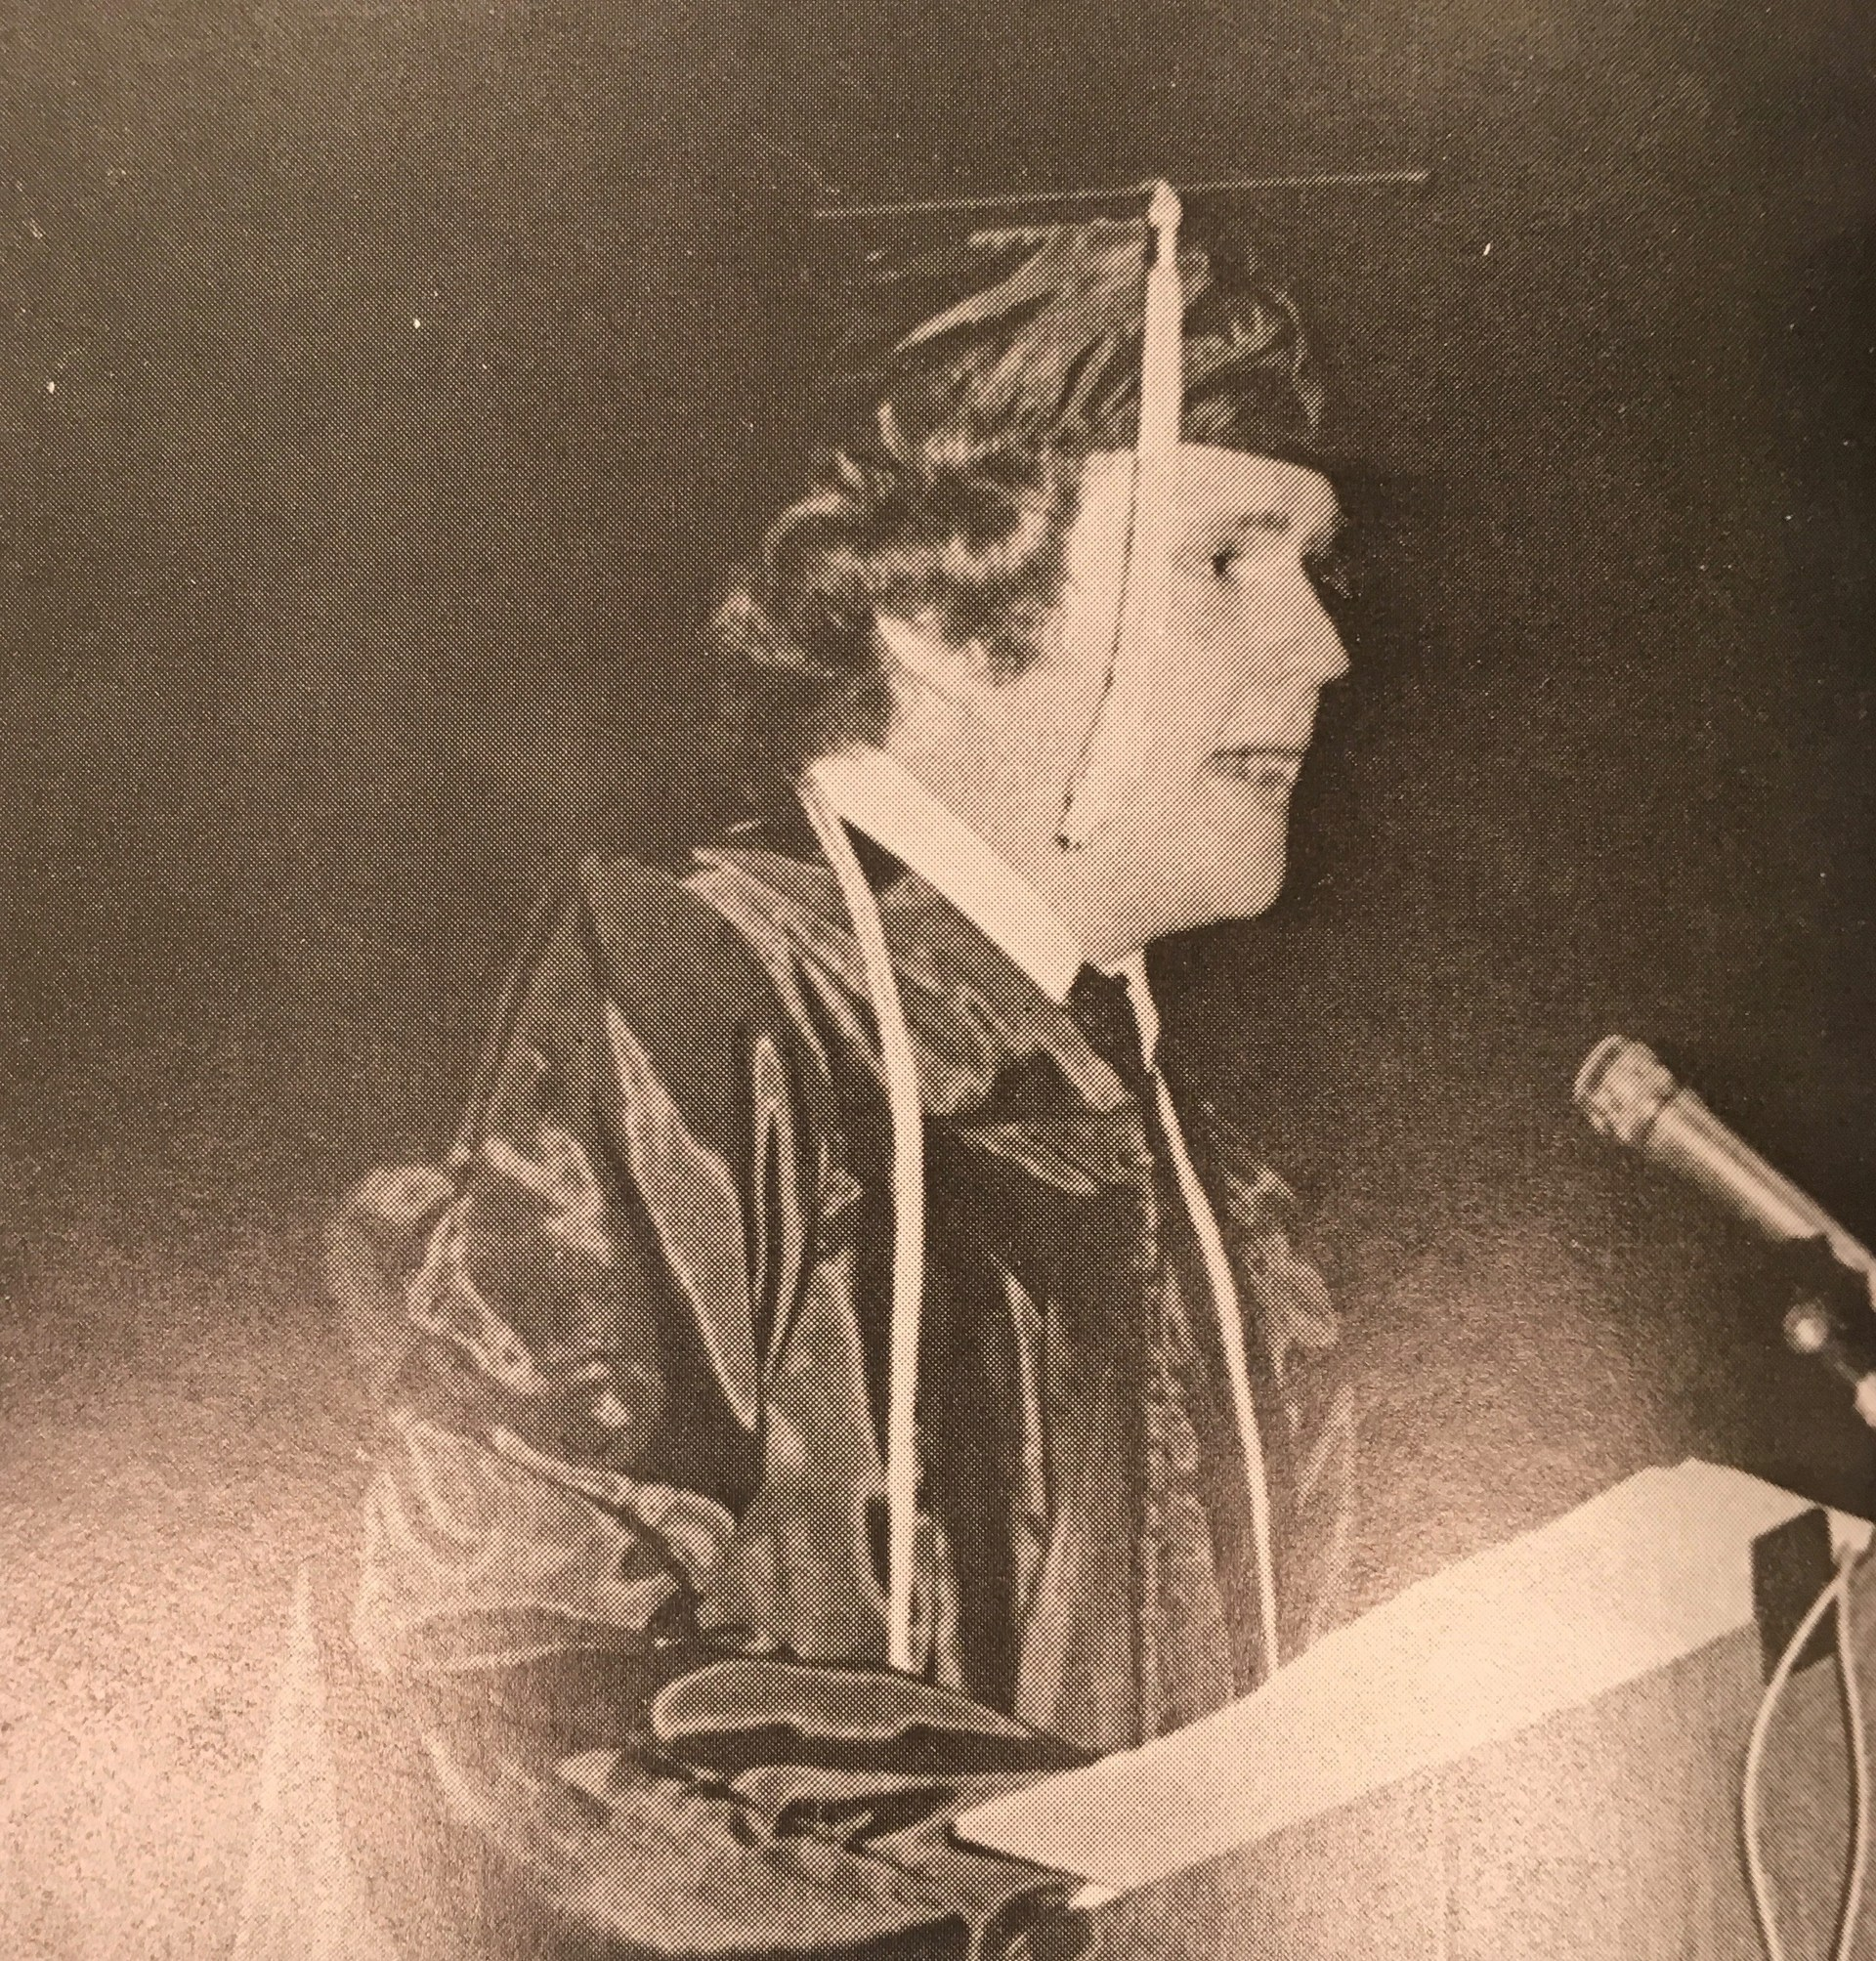 Reid Sharp giving graduation speech